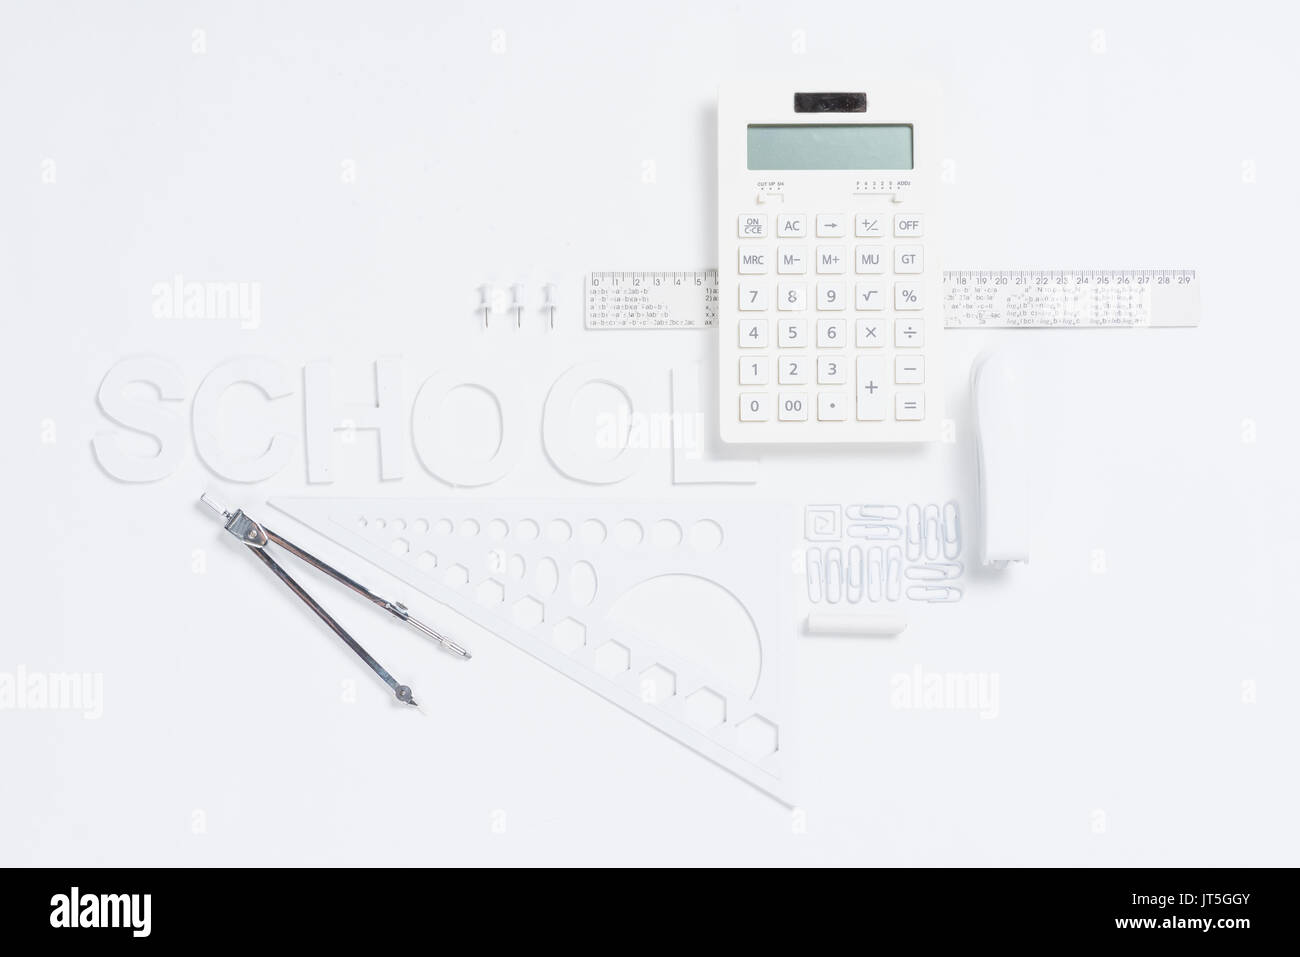 calculator with rulers and stapler with compasses mock-up isolated on white - Stock Image